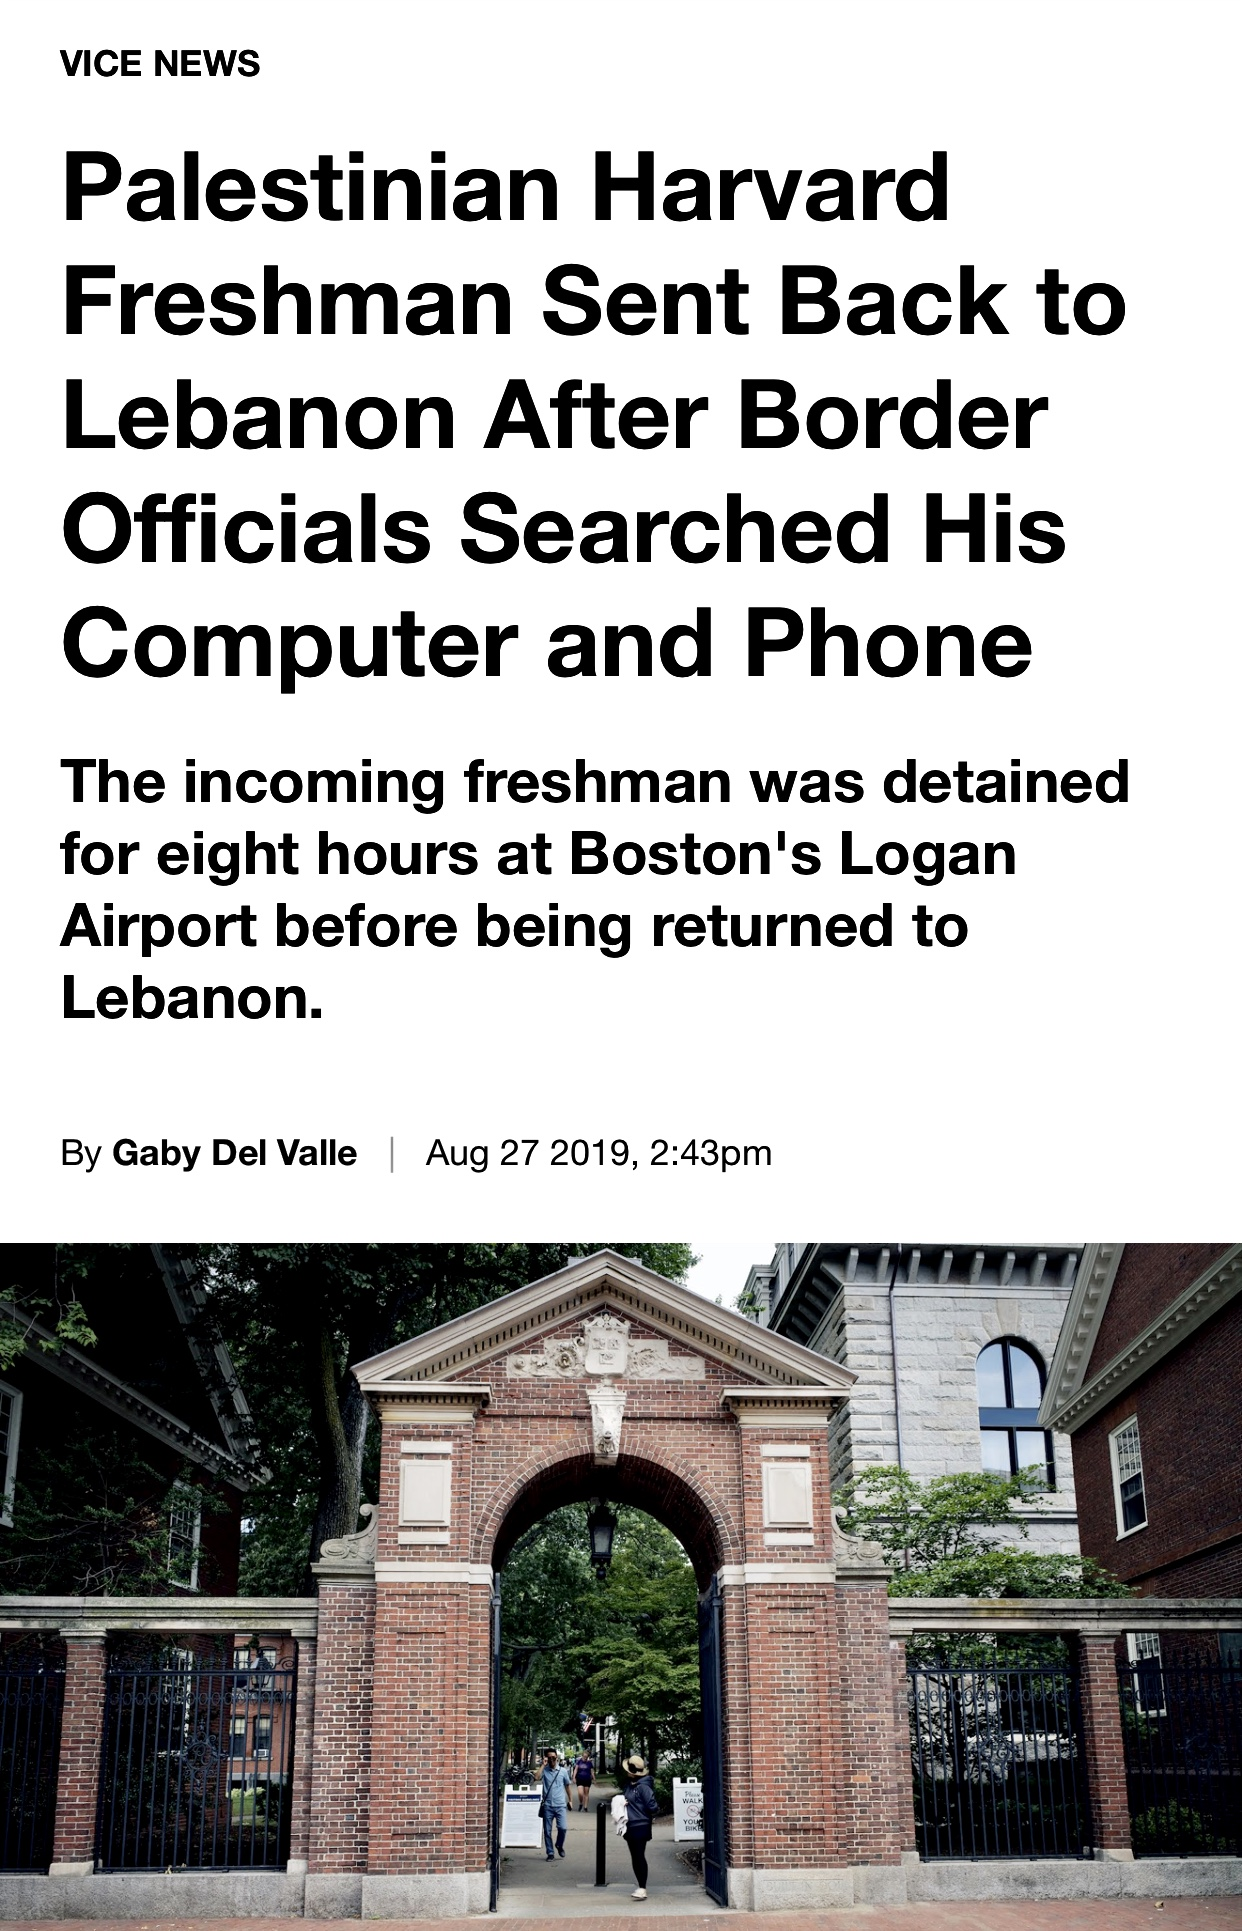 Palestinian Harvard Freshman Sent Back to Lebanon After Border Officials Searched His Computer & Phone